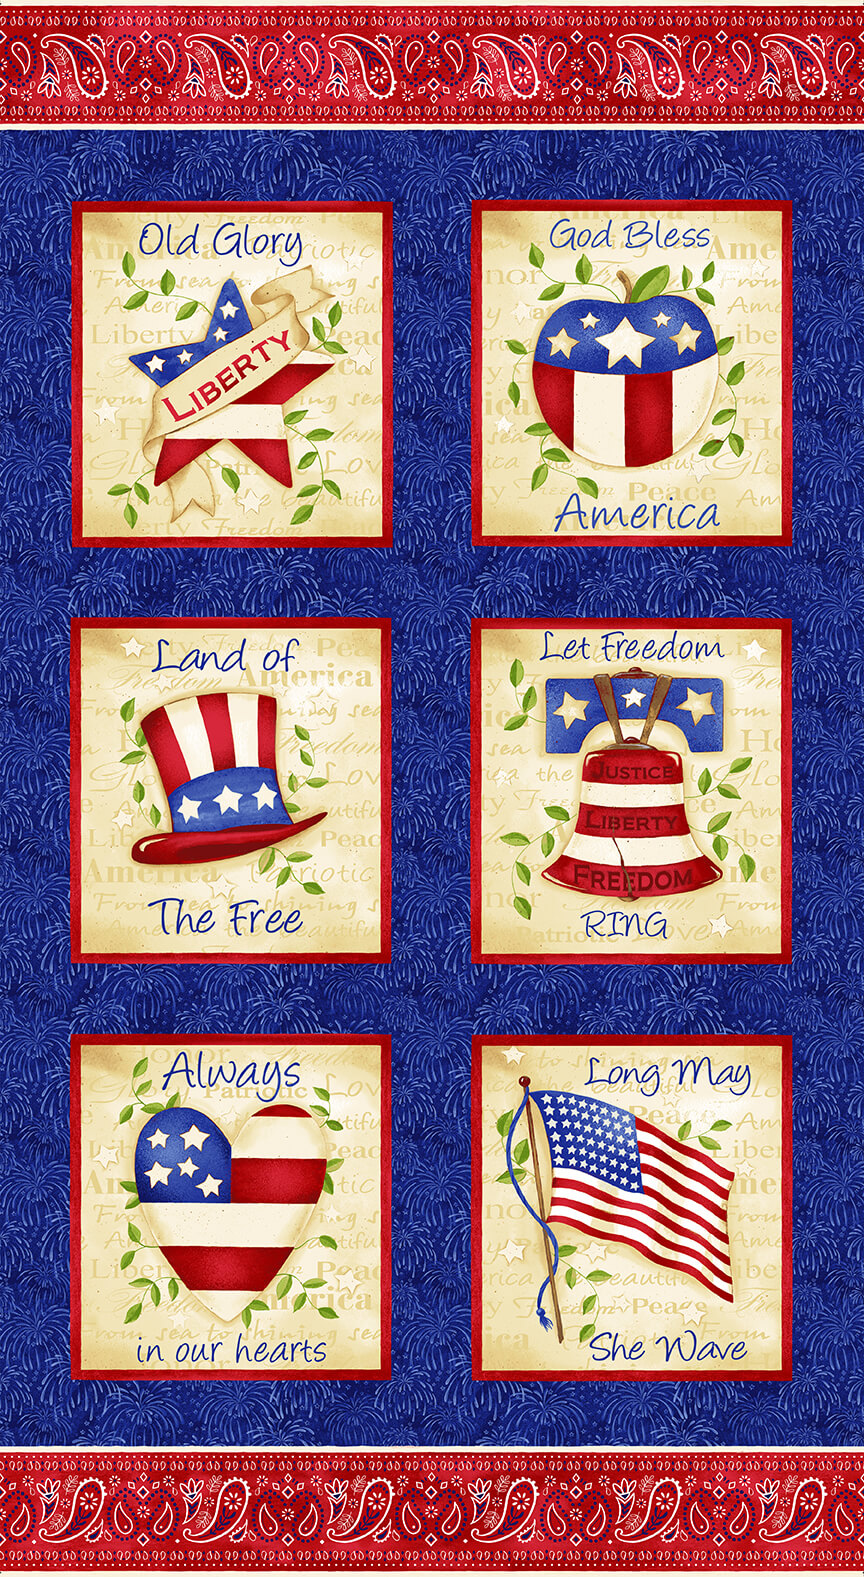 Land of the Free God Bless America Blocks Cotton Fabric Panel